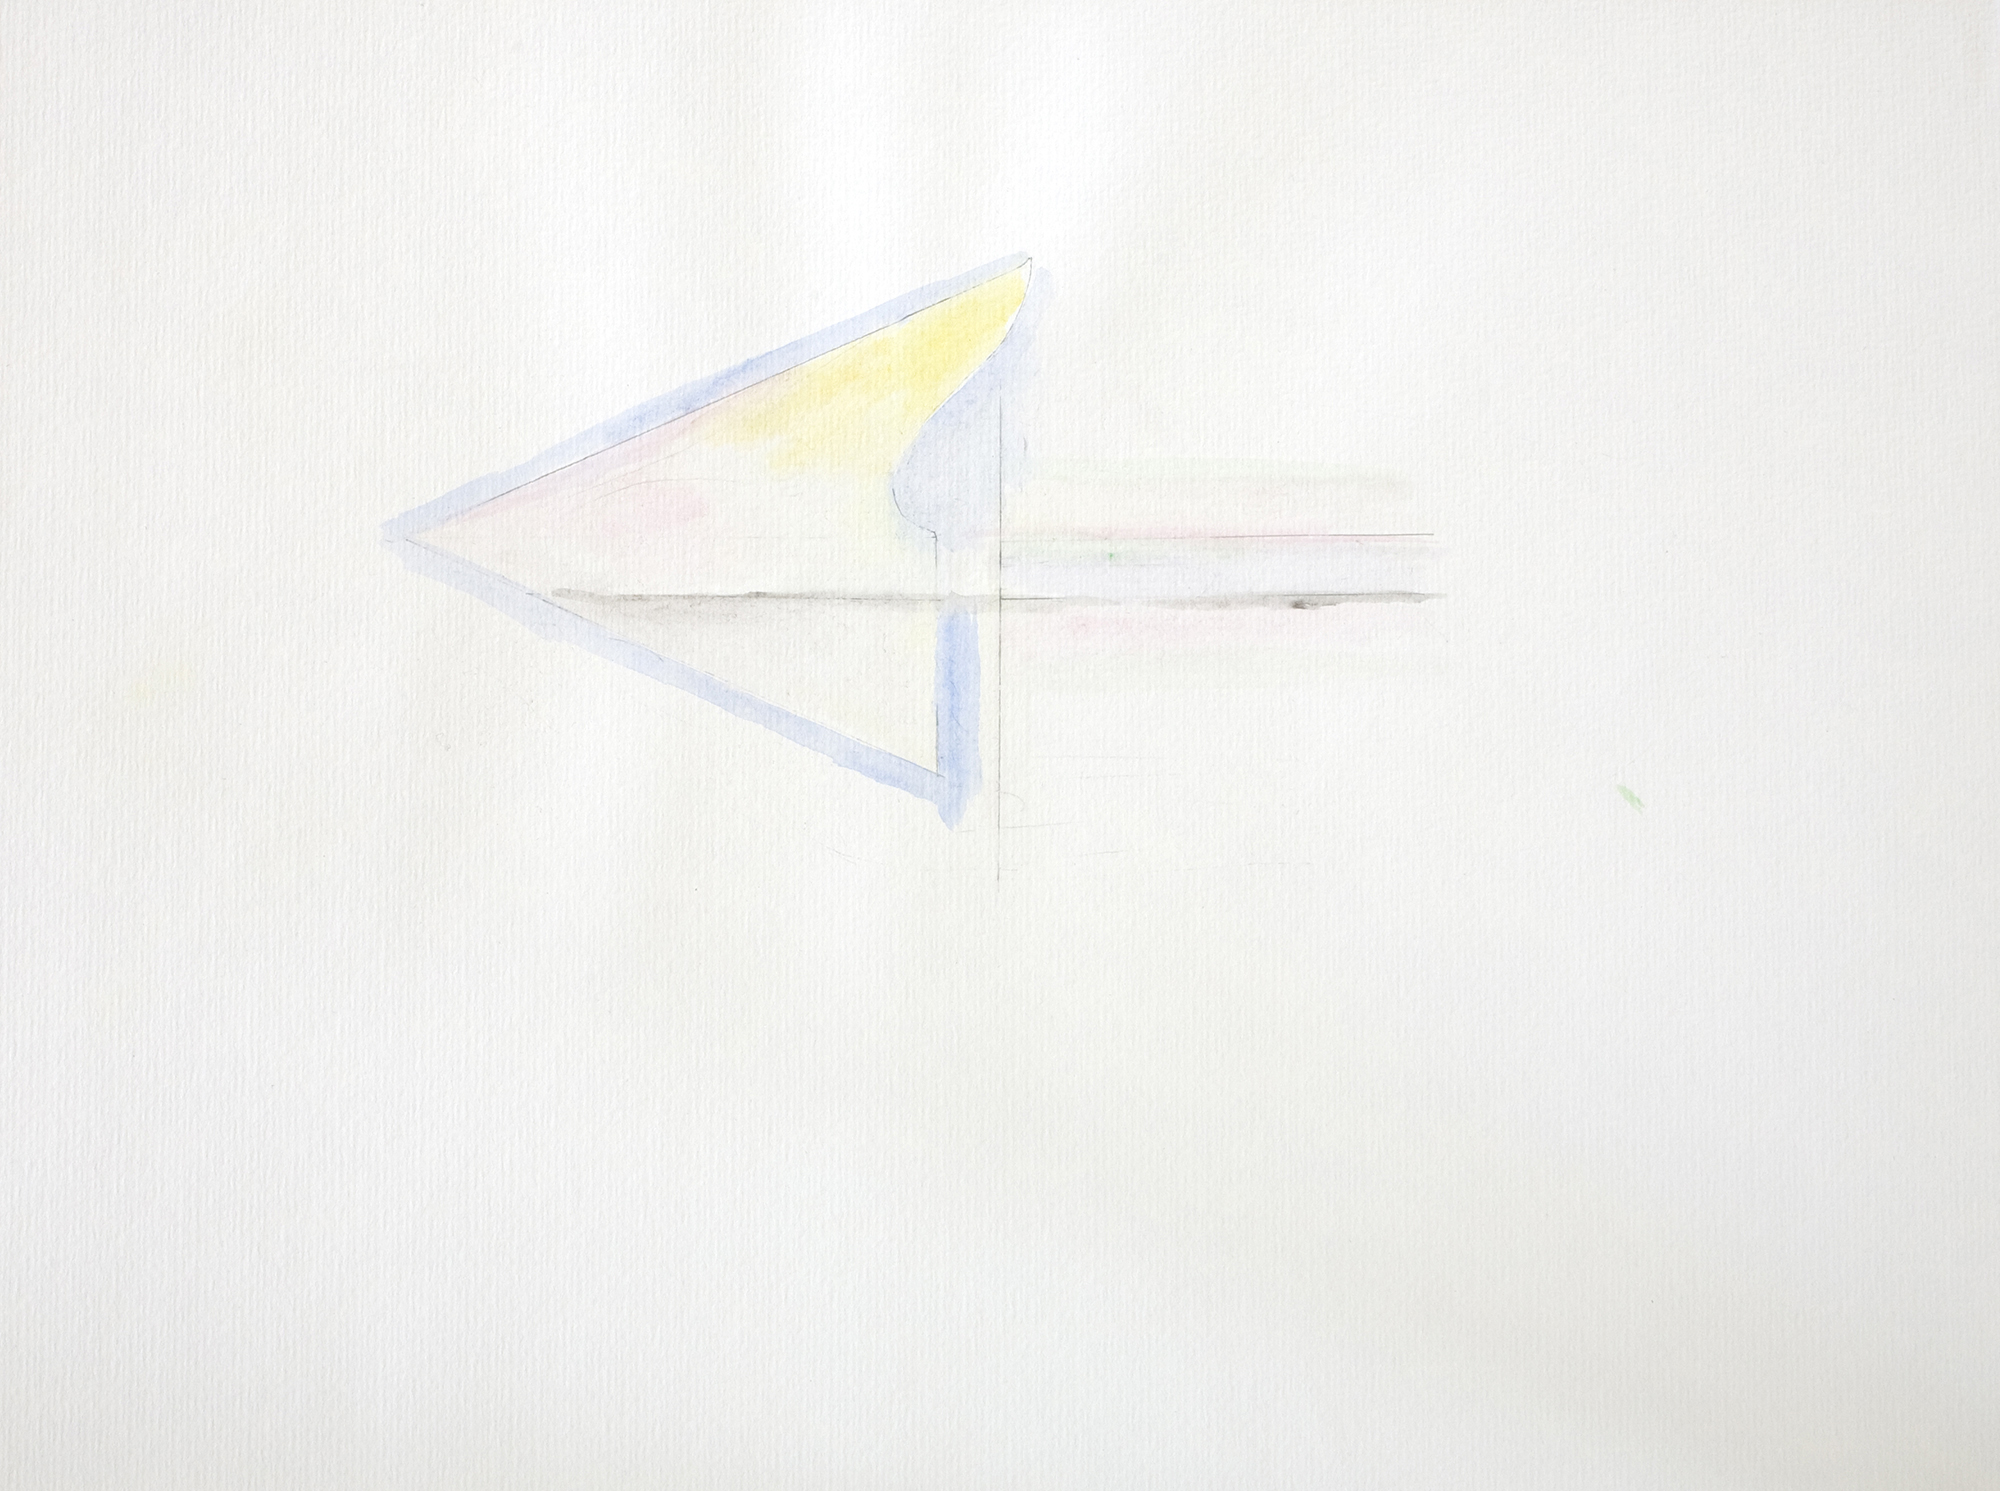 Untitled, 2006, color pencil on paper, 30 x 42 cm